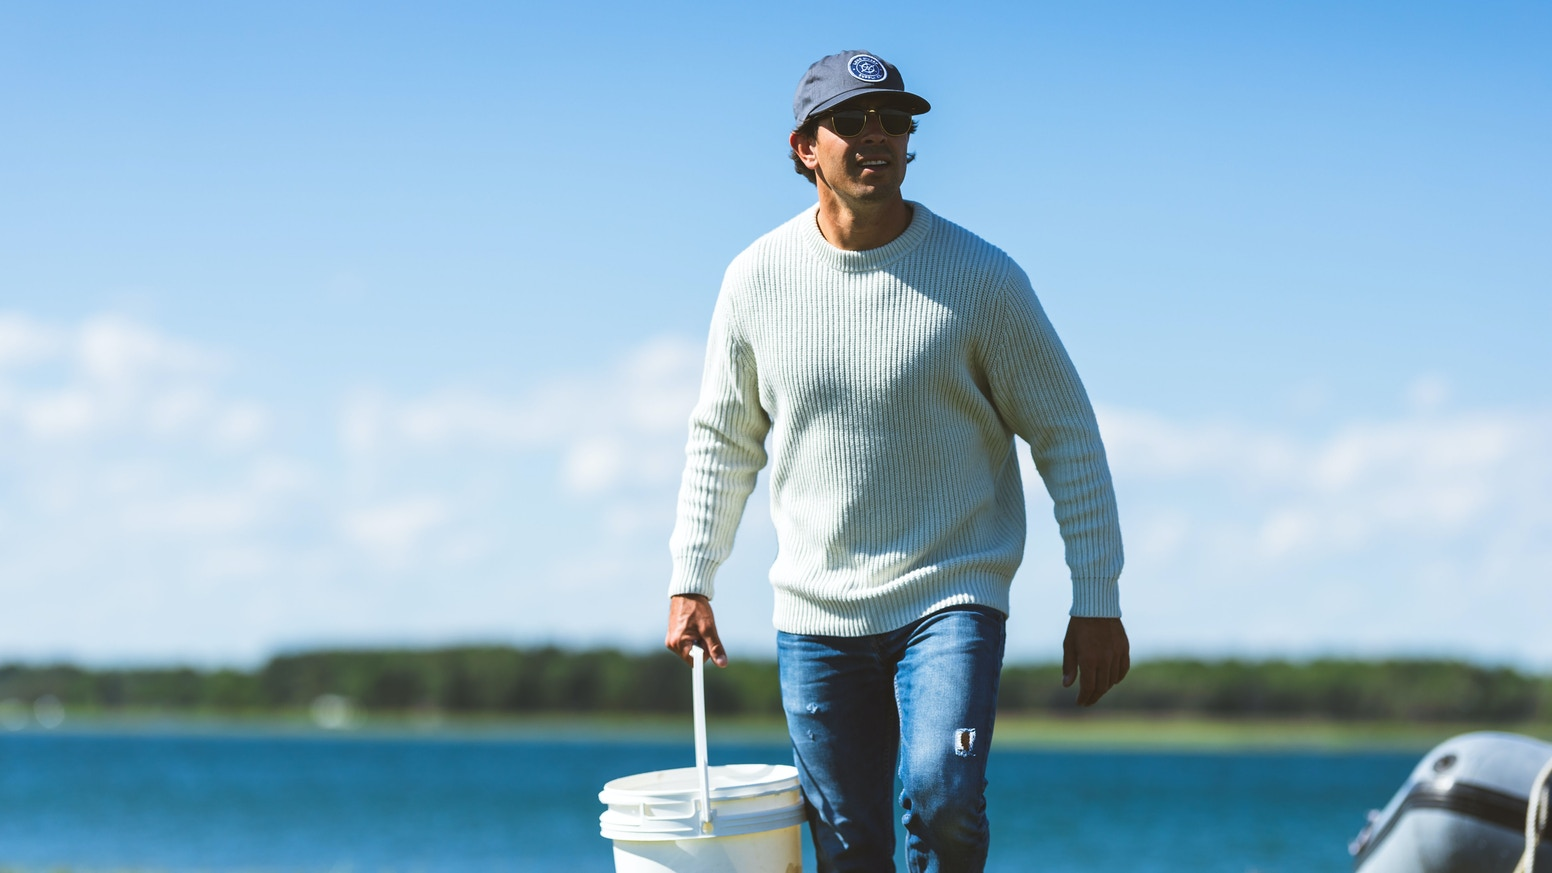 The first fisherman's sweaters made with a soft blend of recycled oyster shells, recycled water bottles, and natural lambswool.